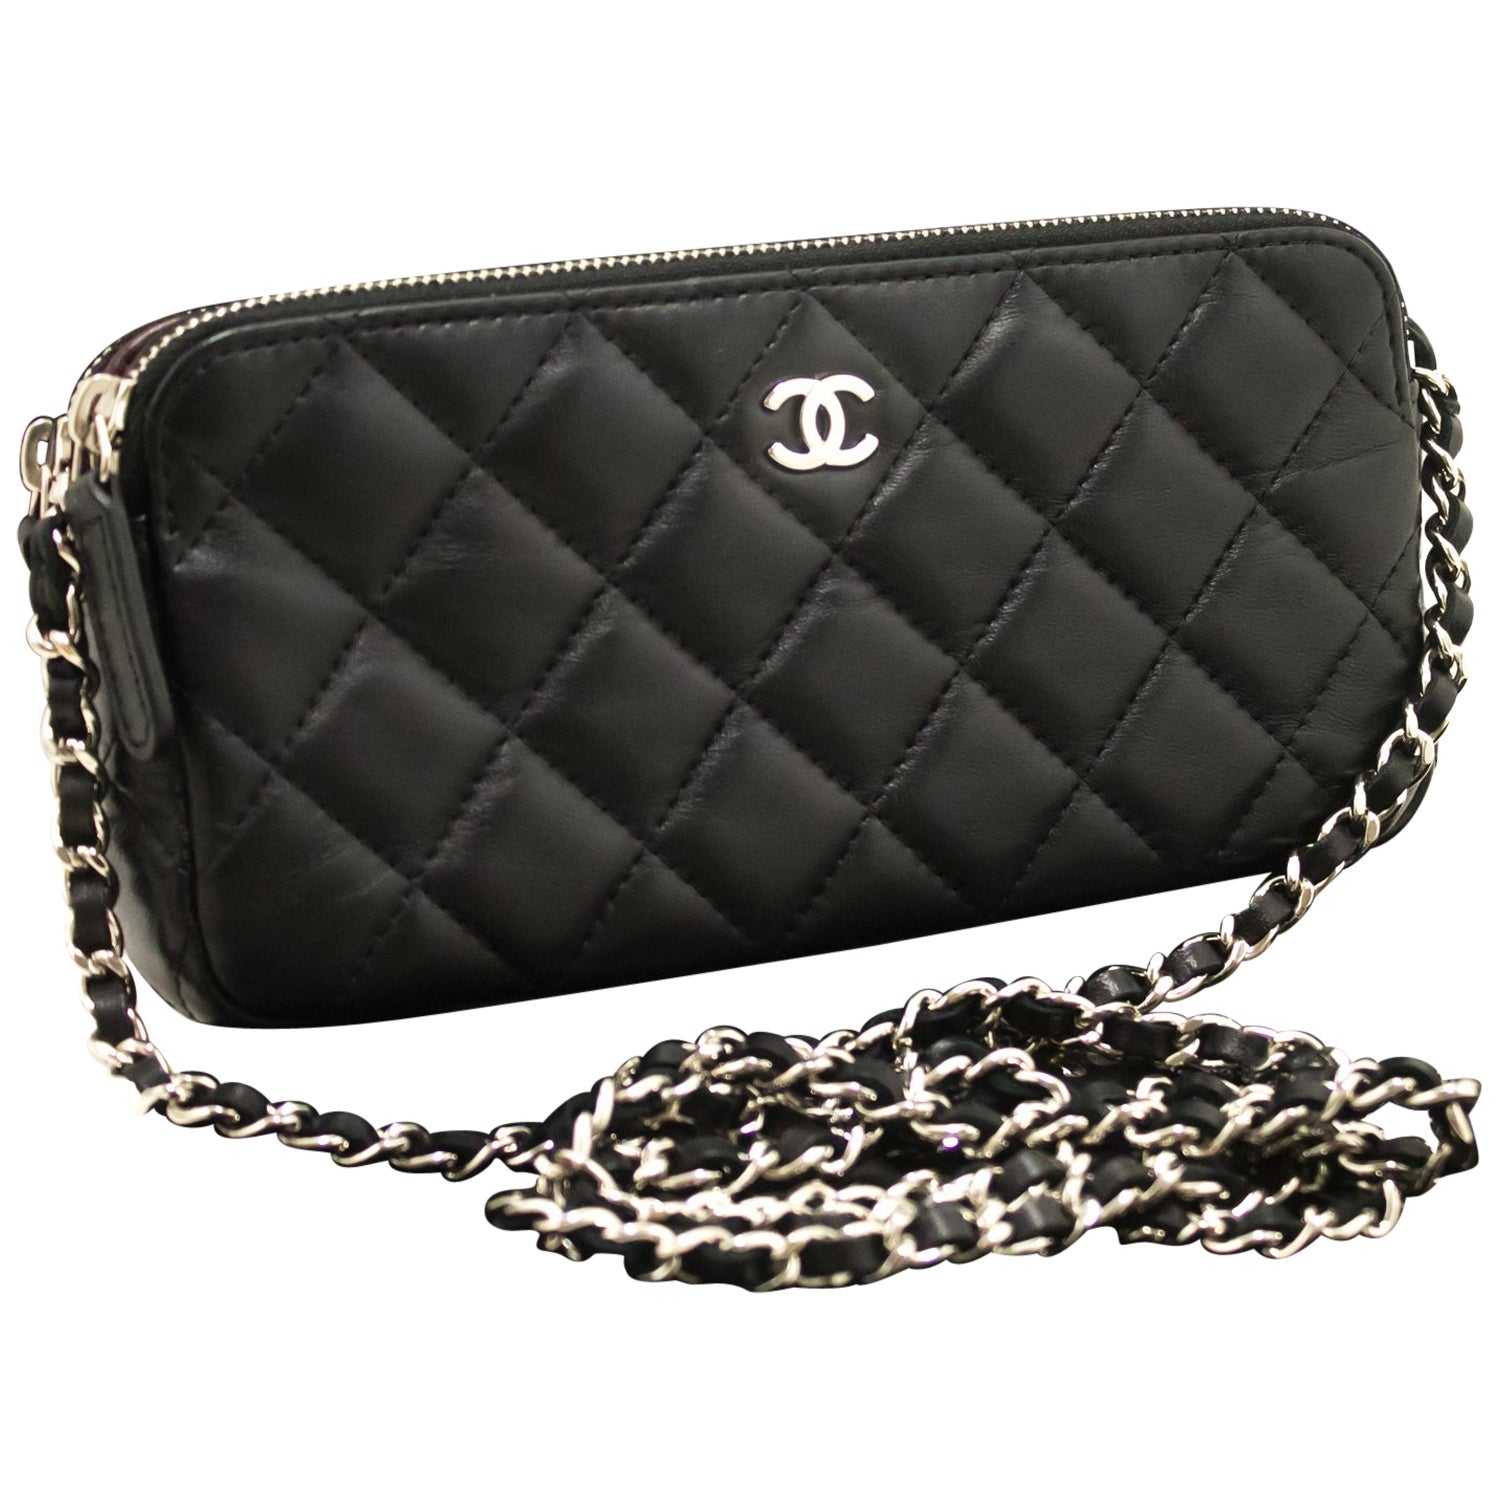 1c946fa1d741b Chanel Wallet On Chain WOC Double Zip Chain Black Shoulder Bag For Sale at  1stdibs